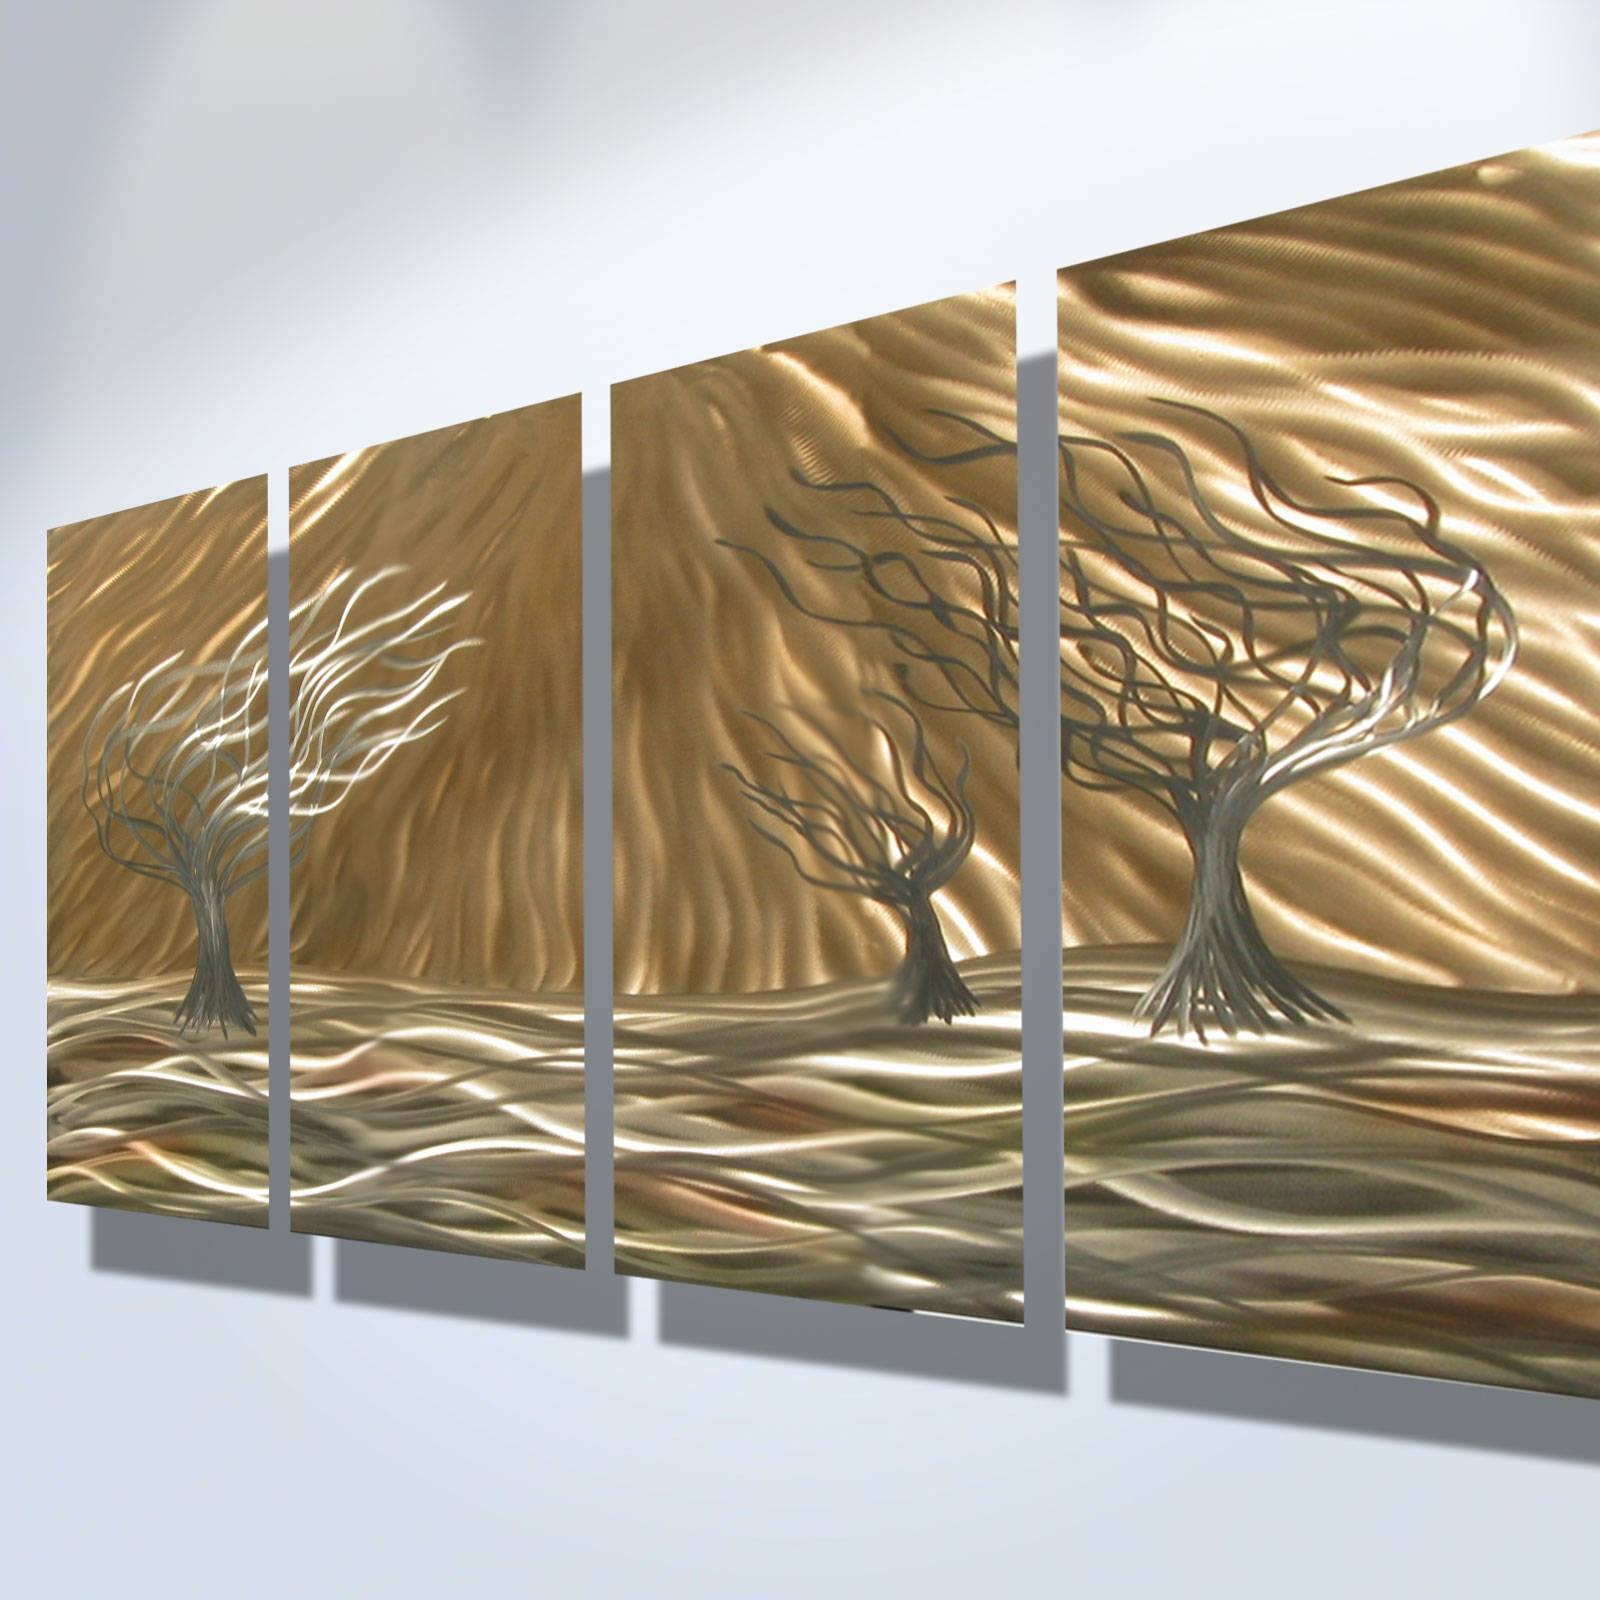 3 Trees 4 Panel – Abstract Metal Wall Art Contemporary Modern Inside Current Metal Wall Art (View 1 of 30)